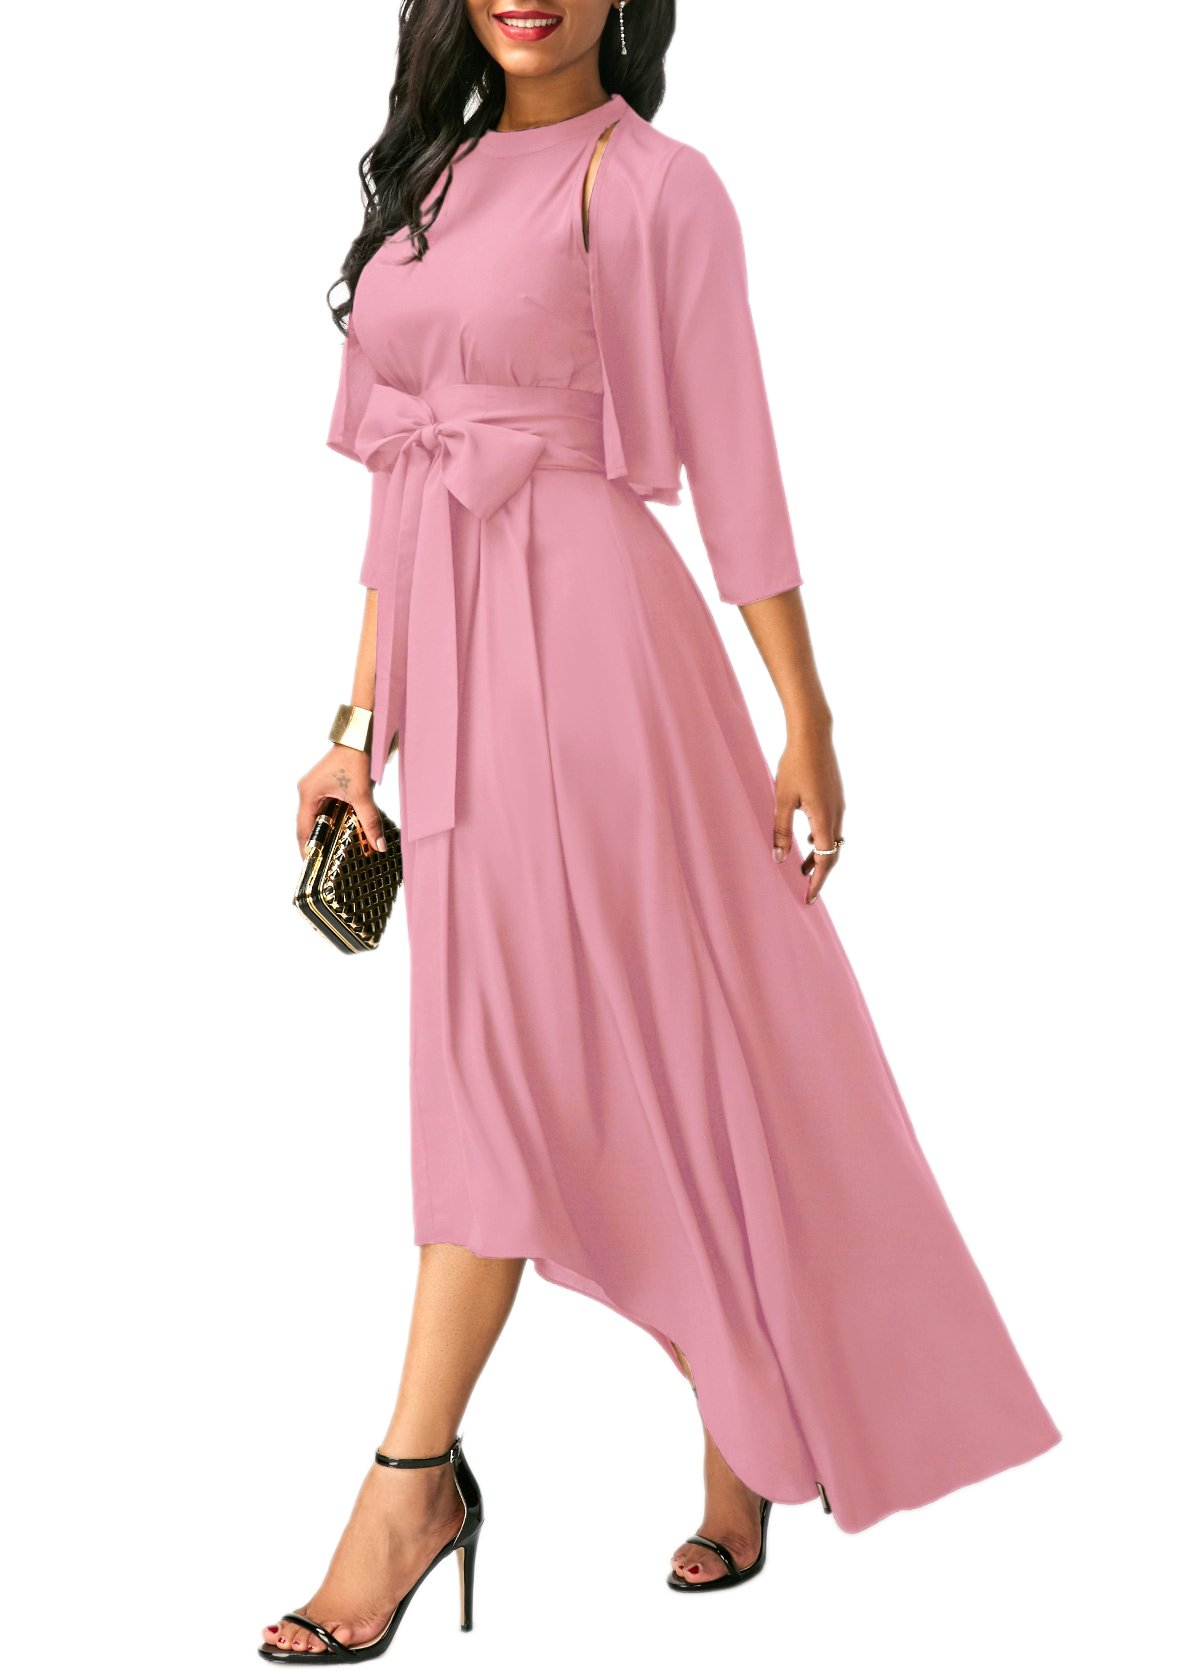 Lalagen Womens Plus Size Sleeveless Belted Party Maxi Dress with Cardigan by Lalagen (Image #5)